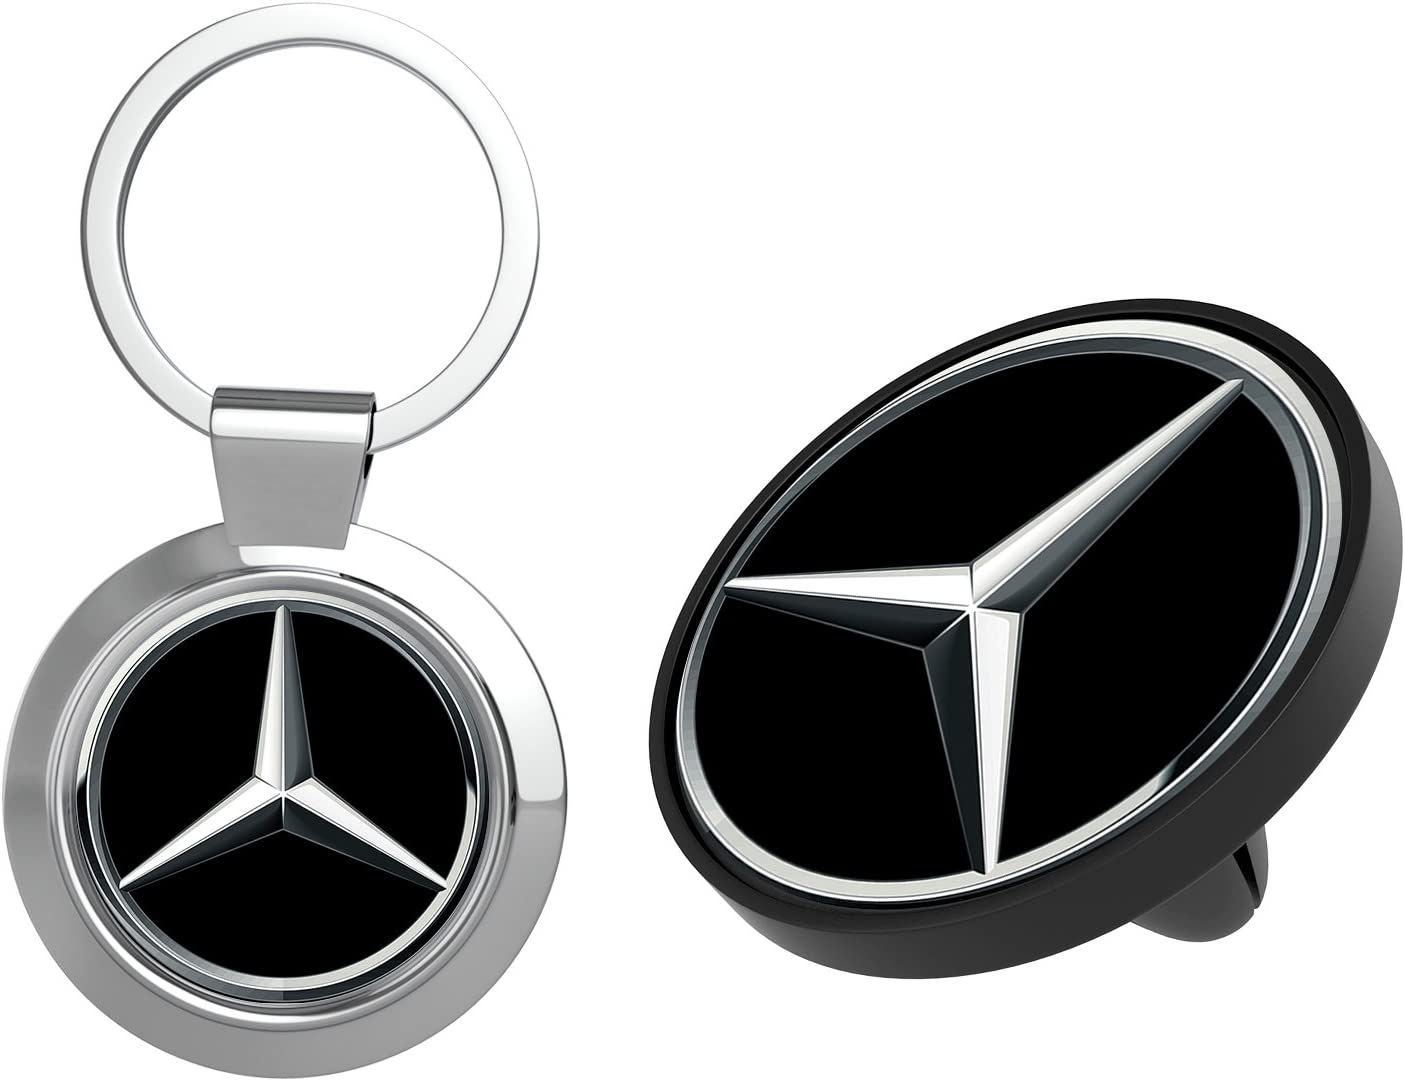 Universal Air Vent Car Cell Phone Holder and Key Chain 2 Pack Samsung Galaxy Magnetic Phone Car Mount Nexus and More Compatible with iPhone X//8//8 Plus//7//7 Plus//6s Plus Mercedes Benz LG